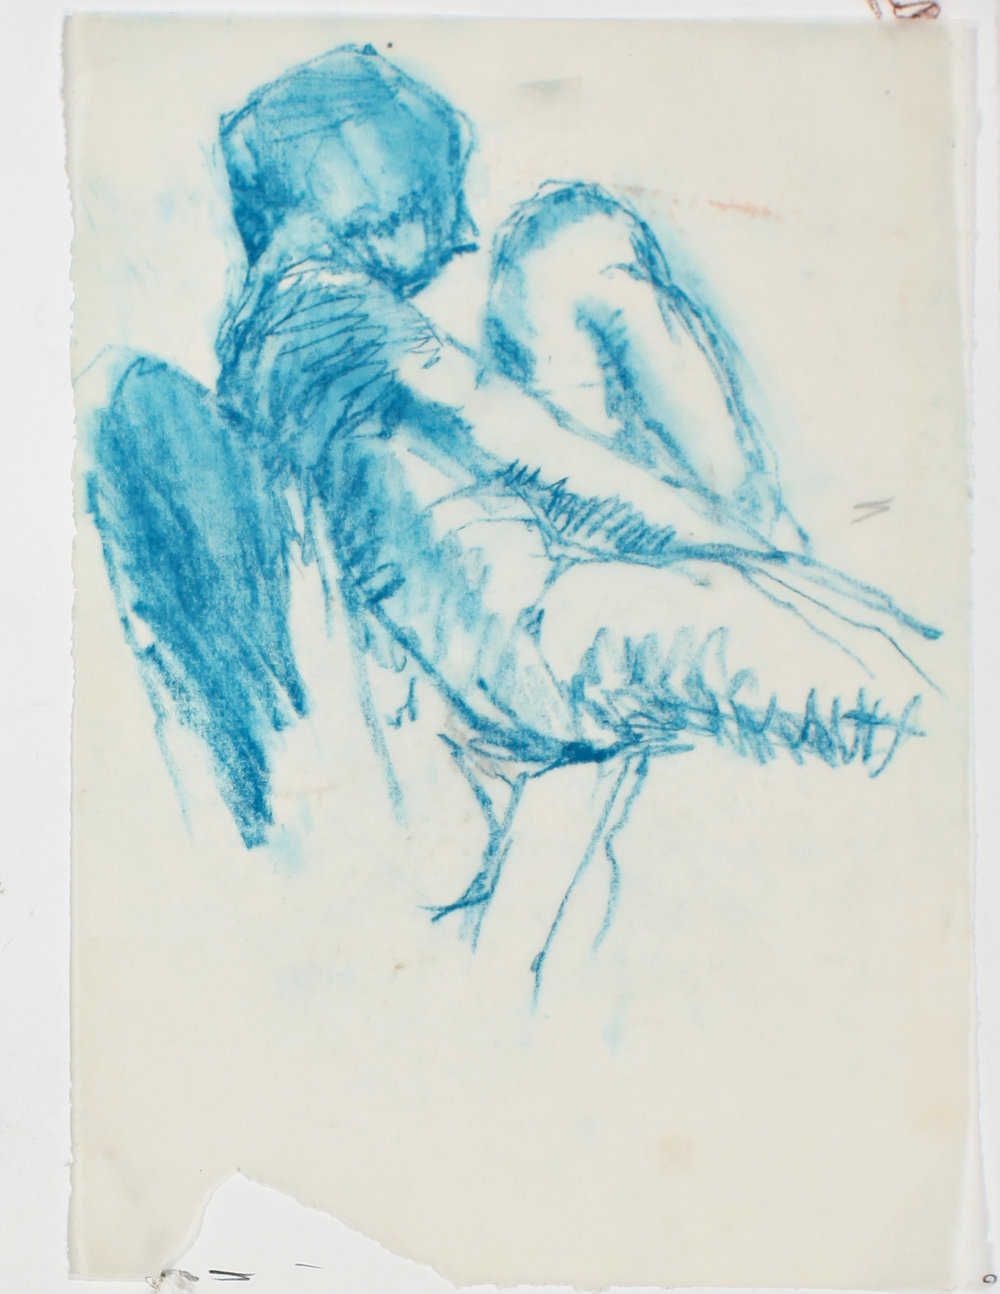 1980s_Blue_Angel_in_Profile_pastel_on_tracing_paper_11x7in_WPF582.jpg